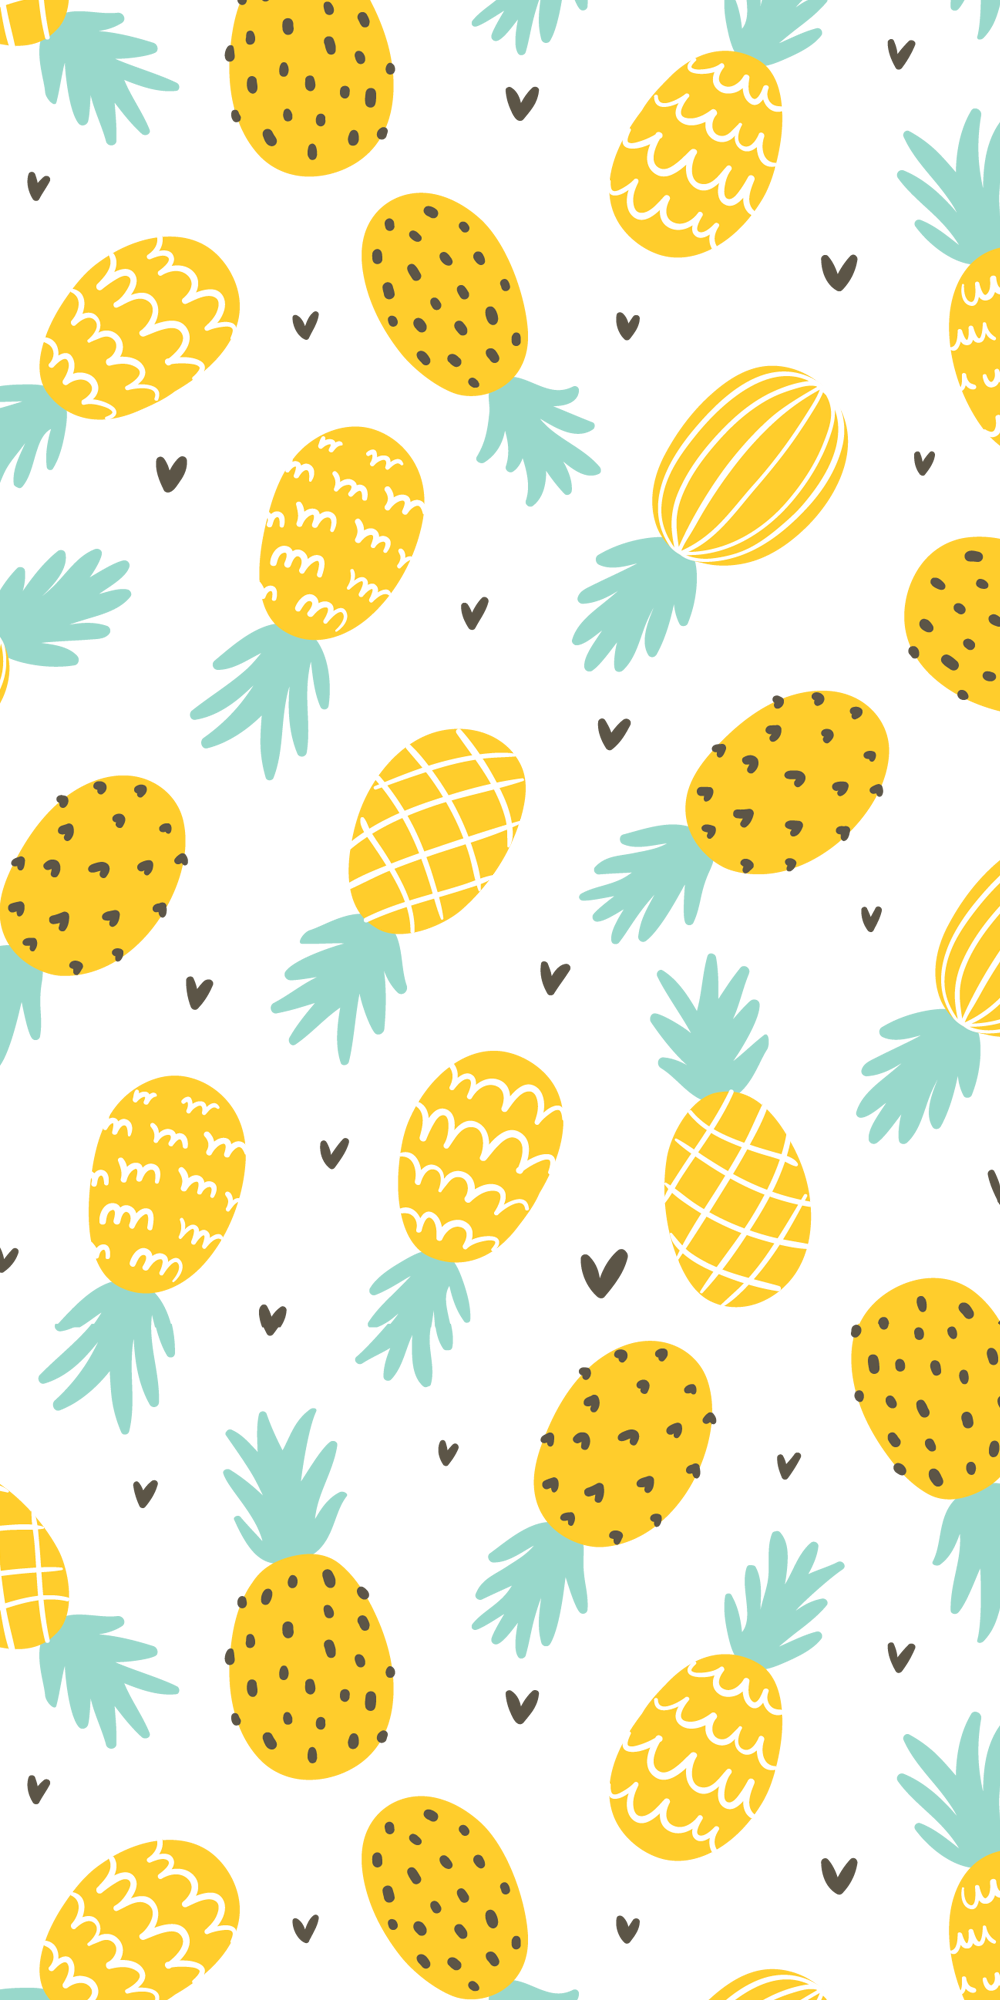 Perfect Combo Pineapples And Hearts Casetify Iphone Fruit Art Design Illustration I Pineapple Illustration Cute Pineapple Wallpaper Pineapple Vector